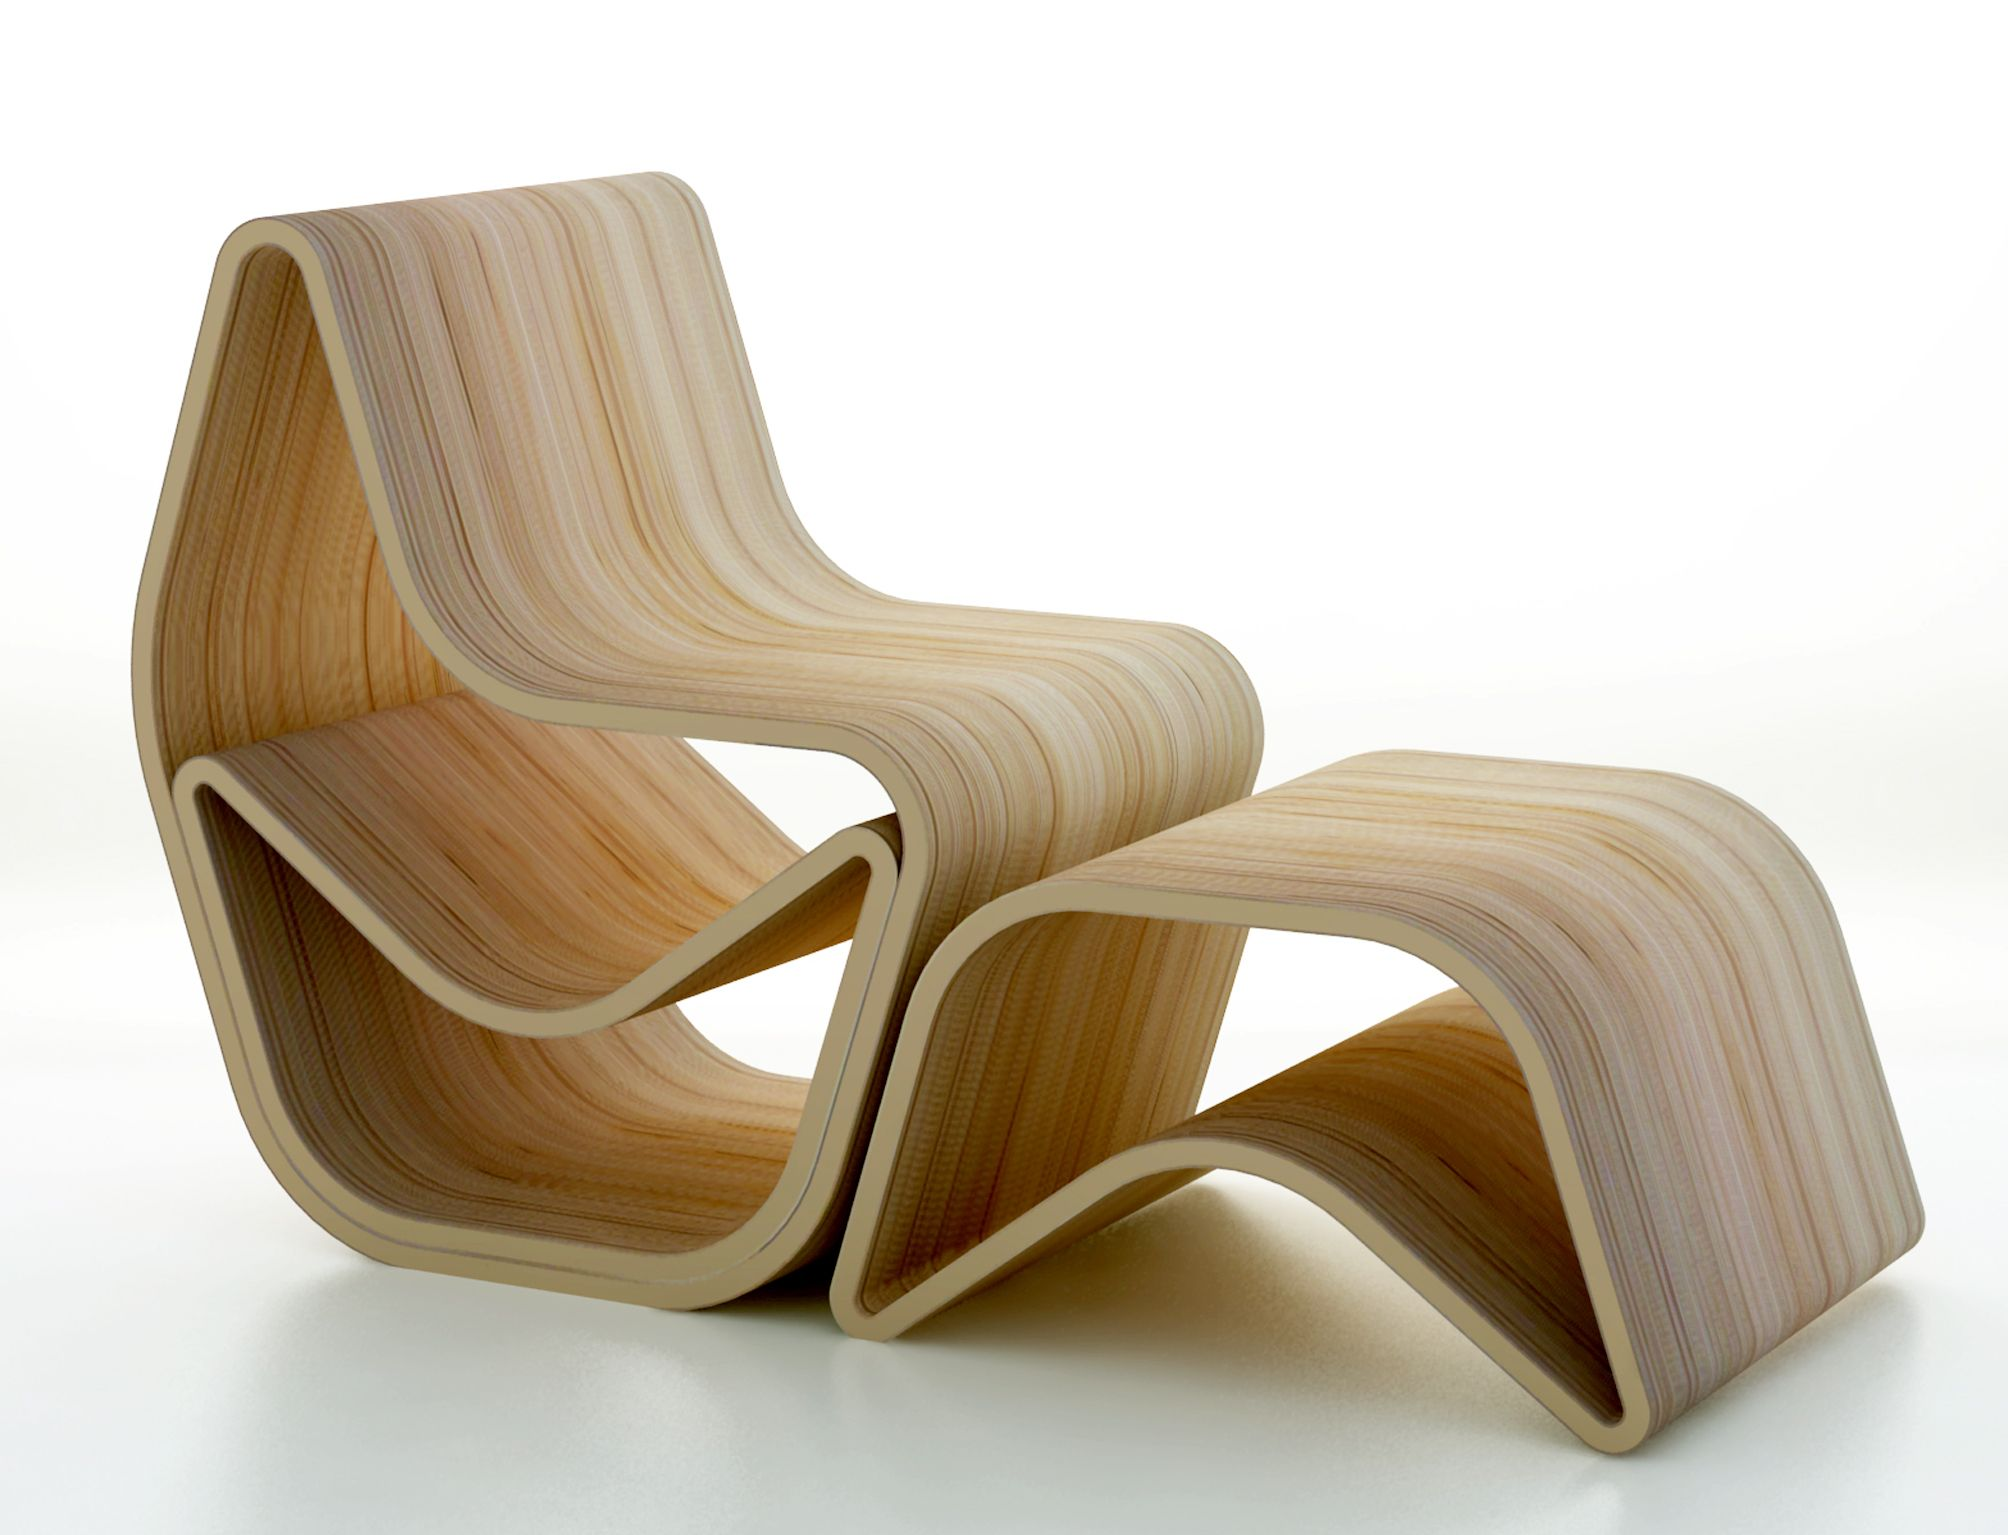 Gval Chair By Gustavo Reboredo Louis Sicard Nenad Katic  # Muebles Gustavo